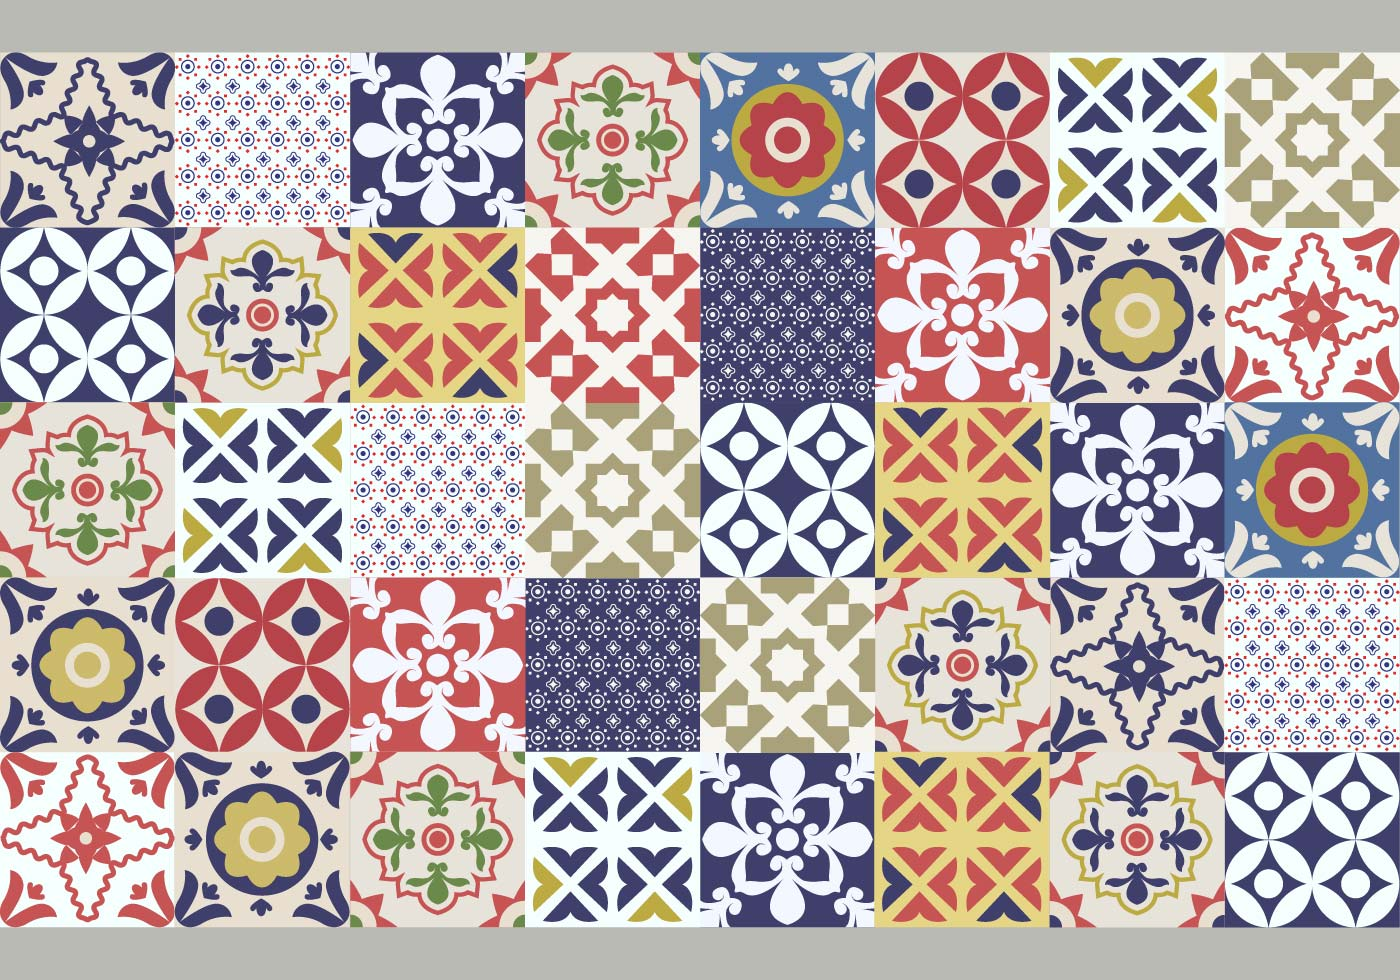 Portuguese Tile Pattern Download Free Vector Art Stock